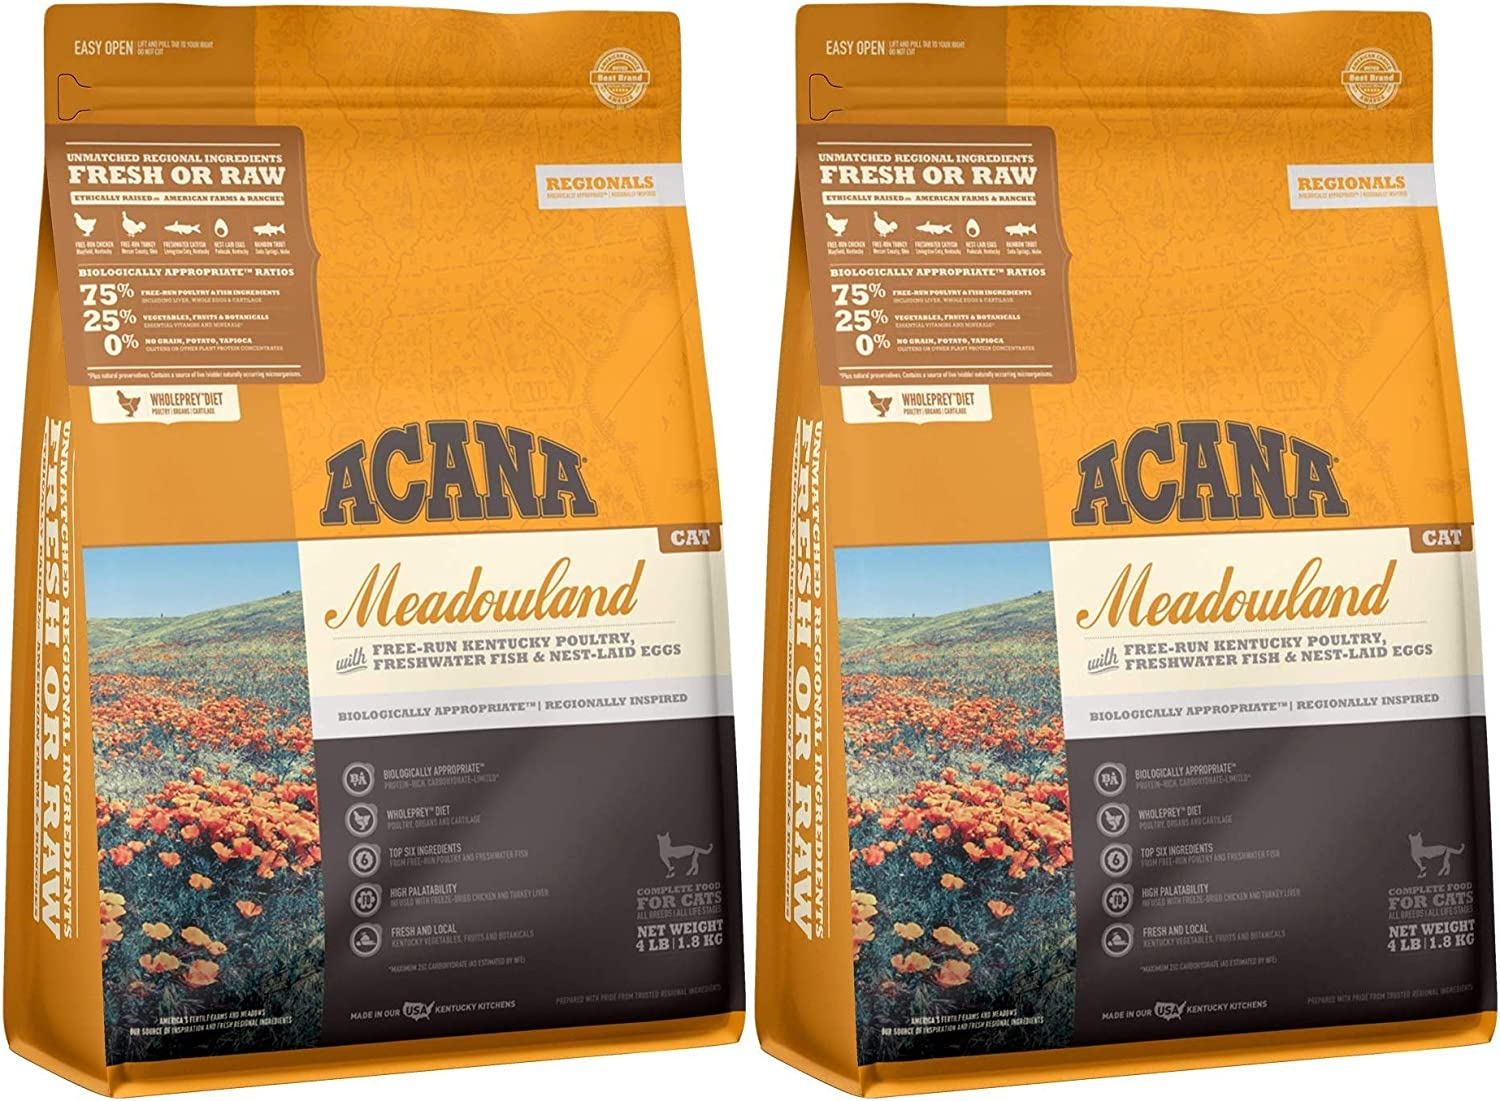 ACANA 2 Pack of Meadowland Dry Cat Food, 4 Pounds Each, Grain-Free, Made in The USA